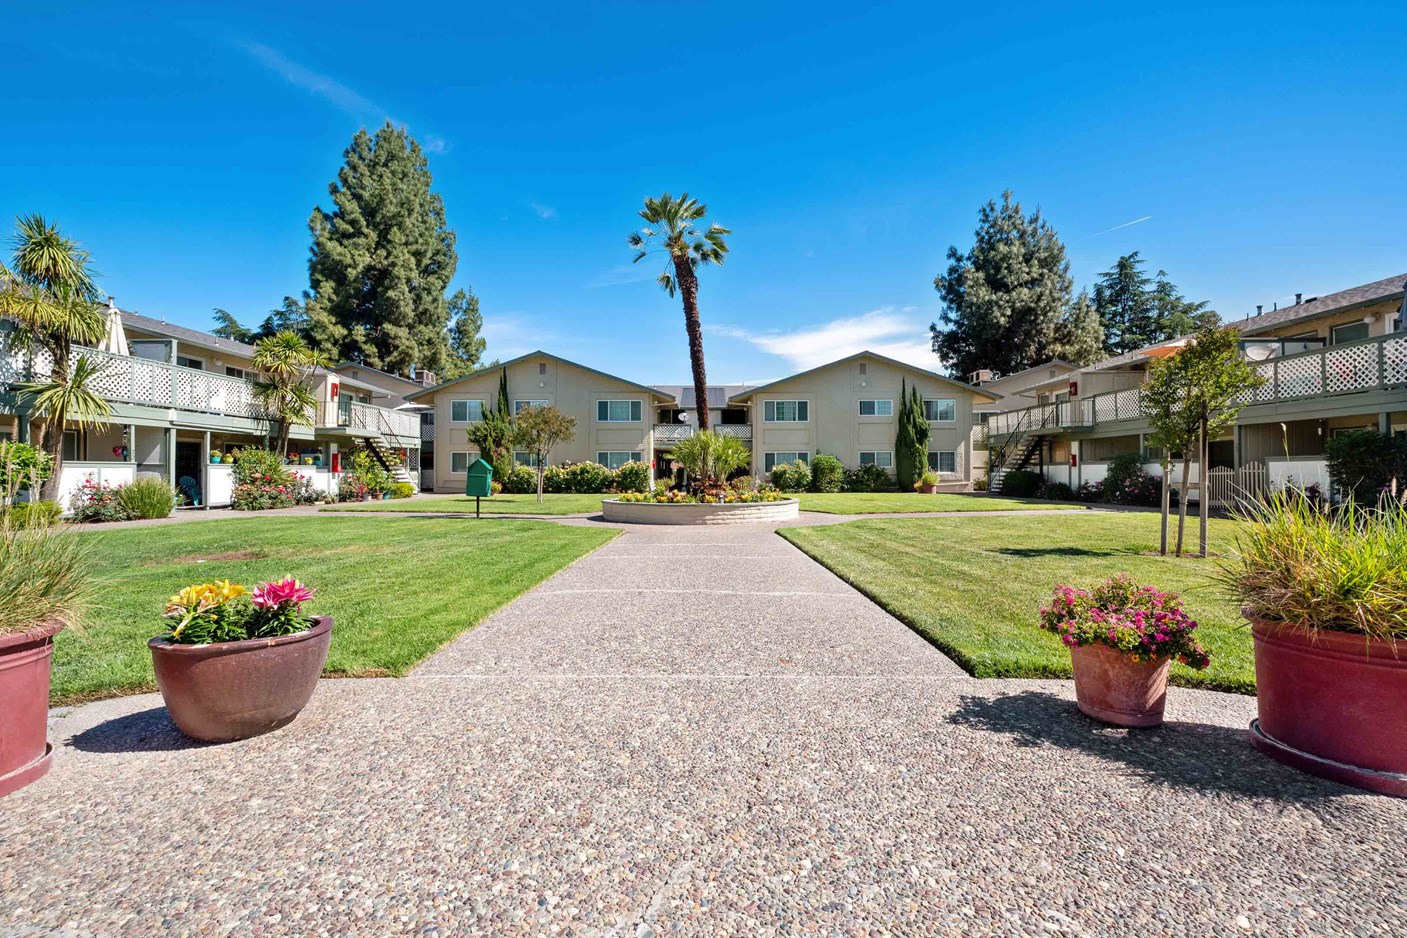 Mission Park Extended Stay Apartment - Sample Image of Gilroy, CA Intern Housing